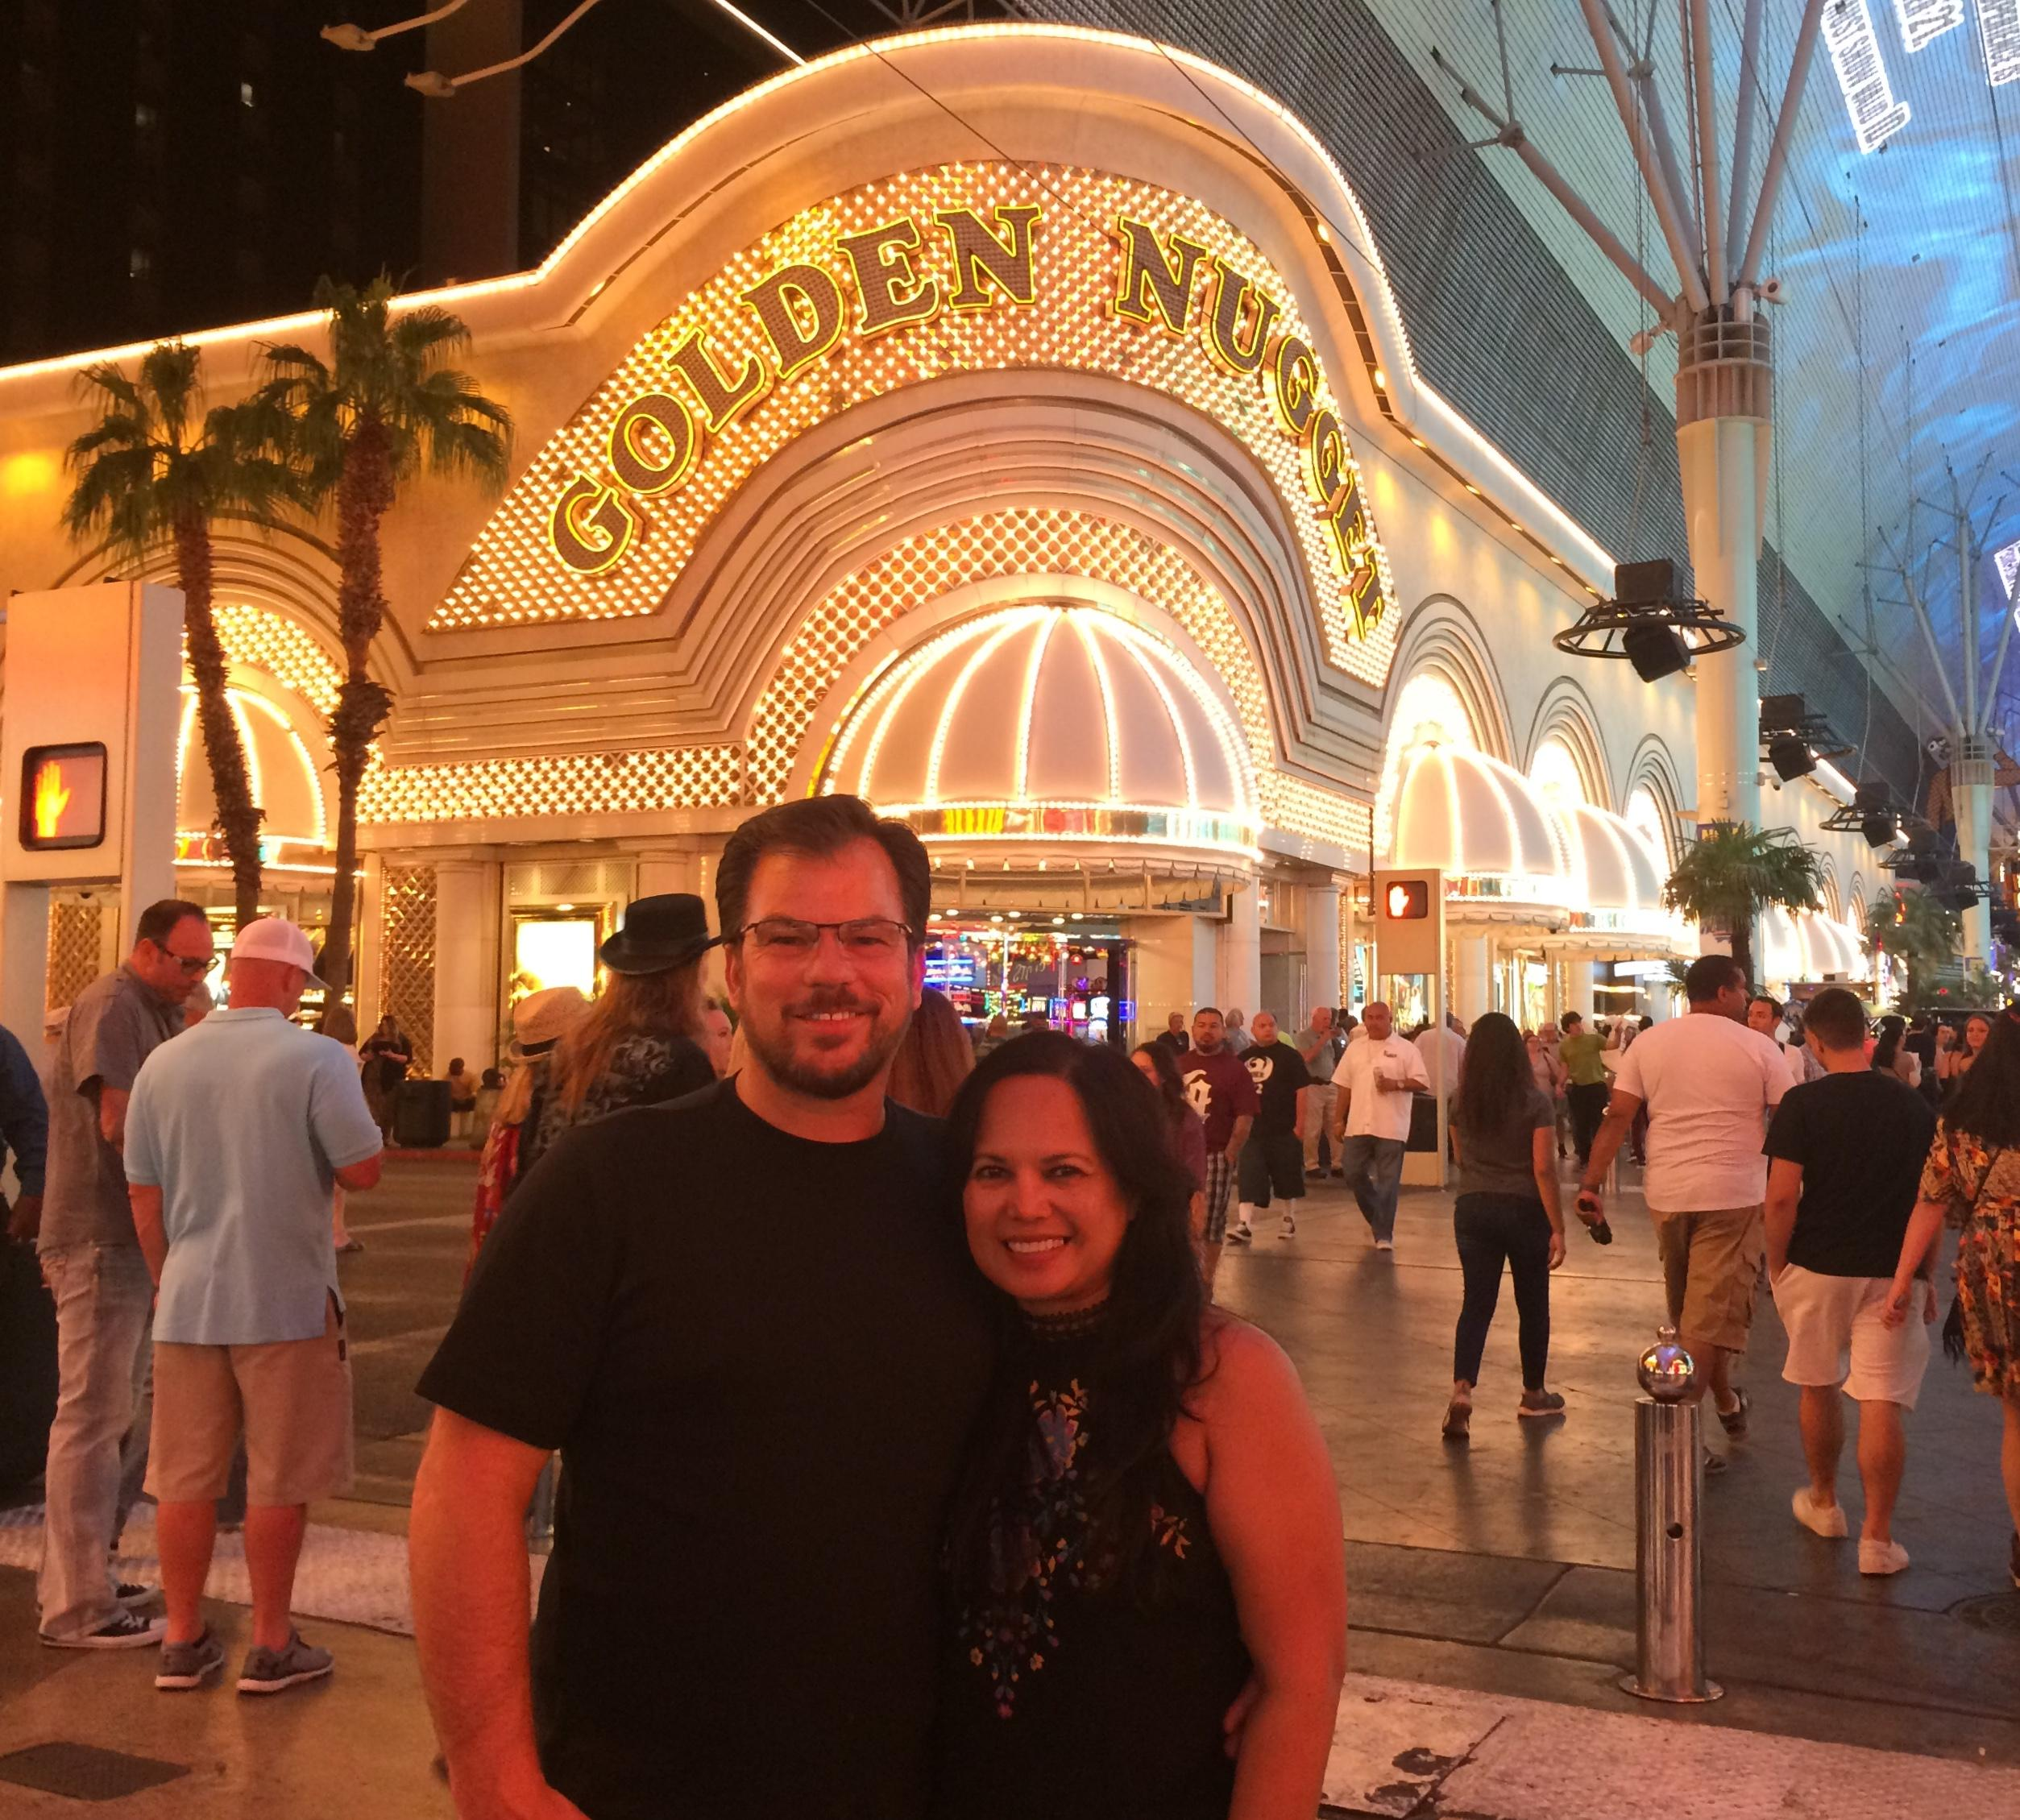 We stayed at Golden Nugget the day my husband and I got married on October 4'14. It was our happiest day ever!!! We fly back and try different hotels at Fremont but unfortunately the staff and accommodations at the D casino was not very good!!!